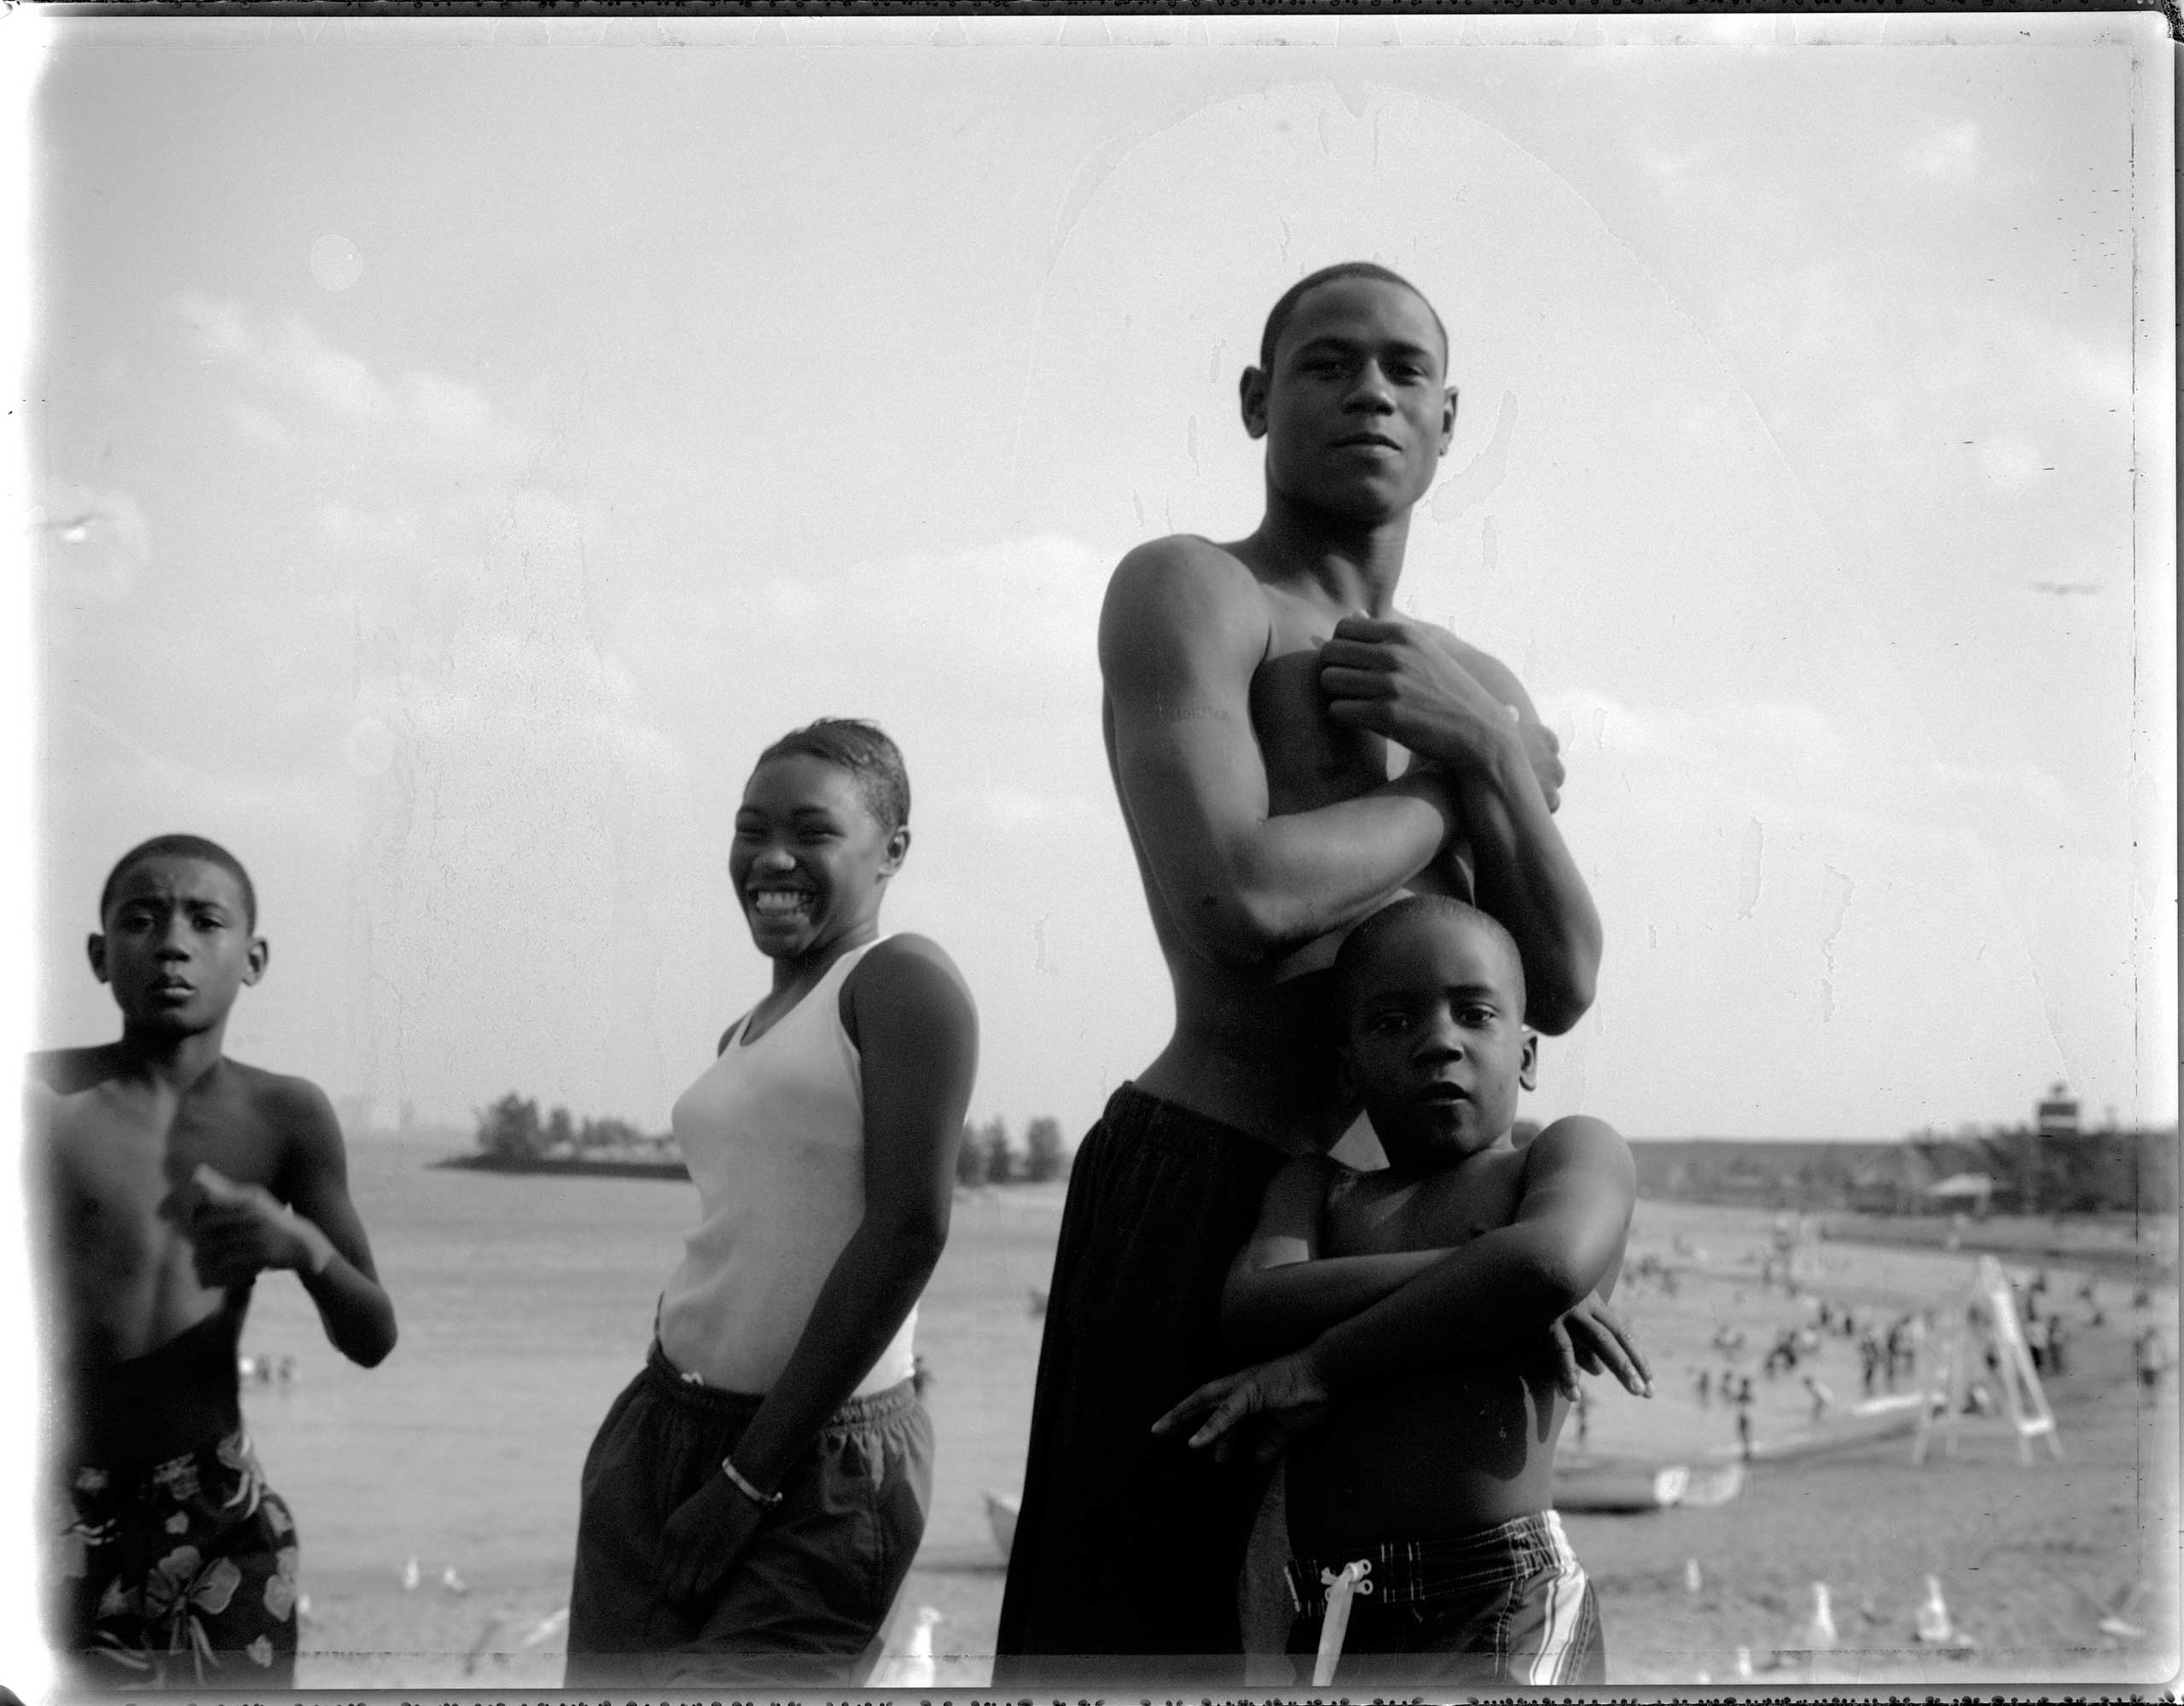 Chicago's lakefront is a frequent hang-out for youth during the summer months, but many young people have never been outside of their neighborhoods,                               let alone to the beaches along the lake. Near South Side, Chicago, 2006.